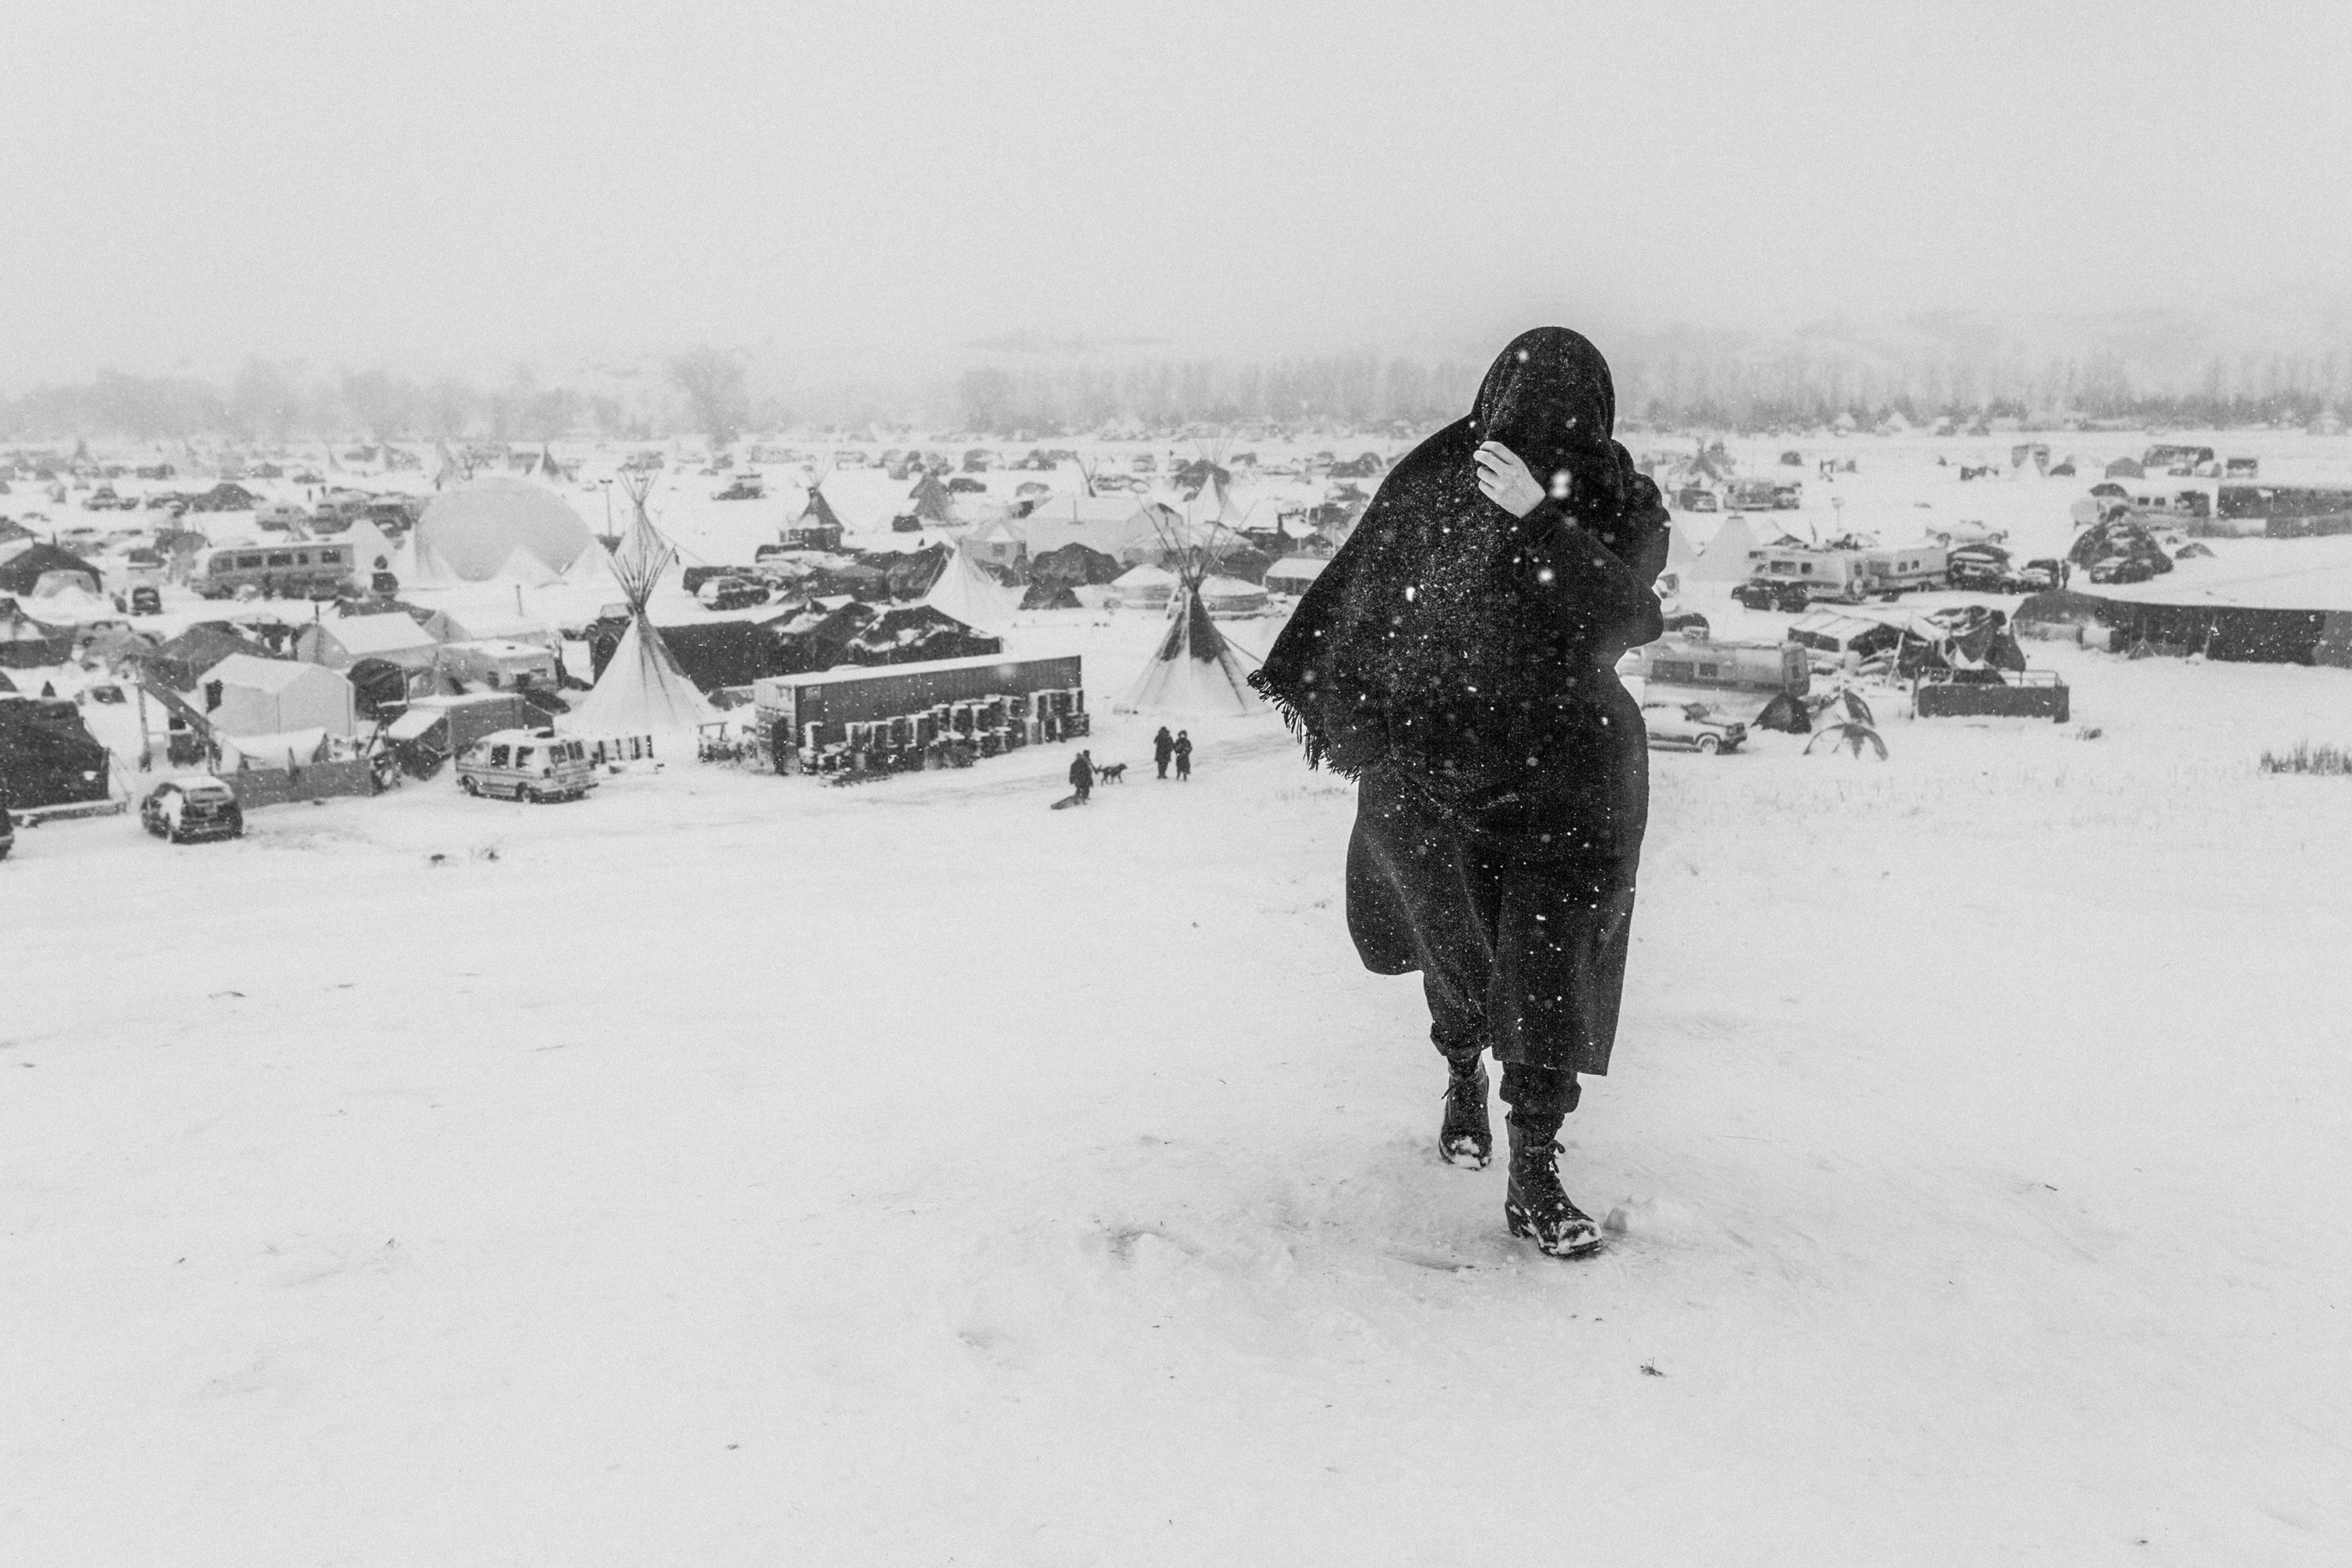 A woman wrapped in black walking away from a snowy landscape with cars, vans, buses, and temporary shelters.